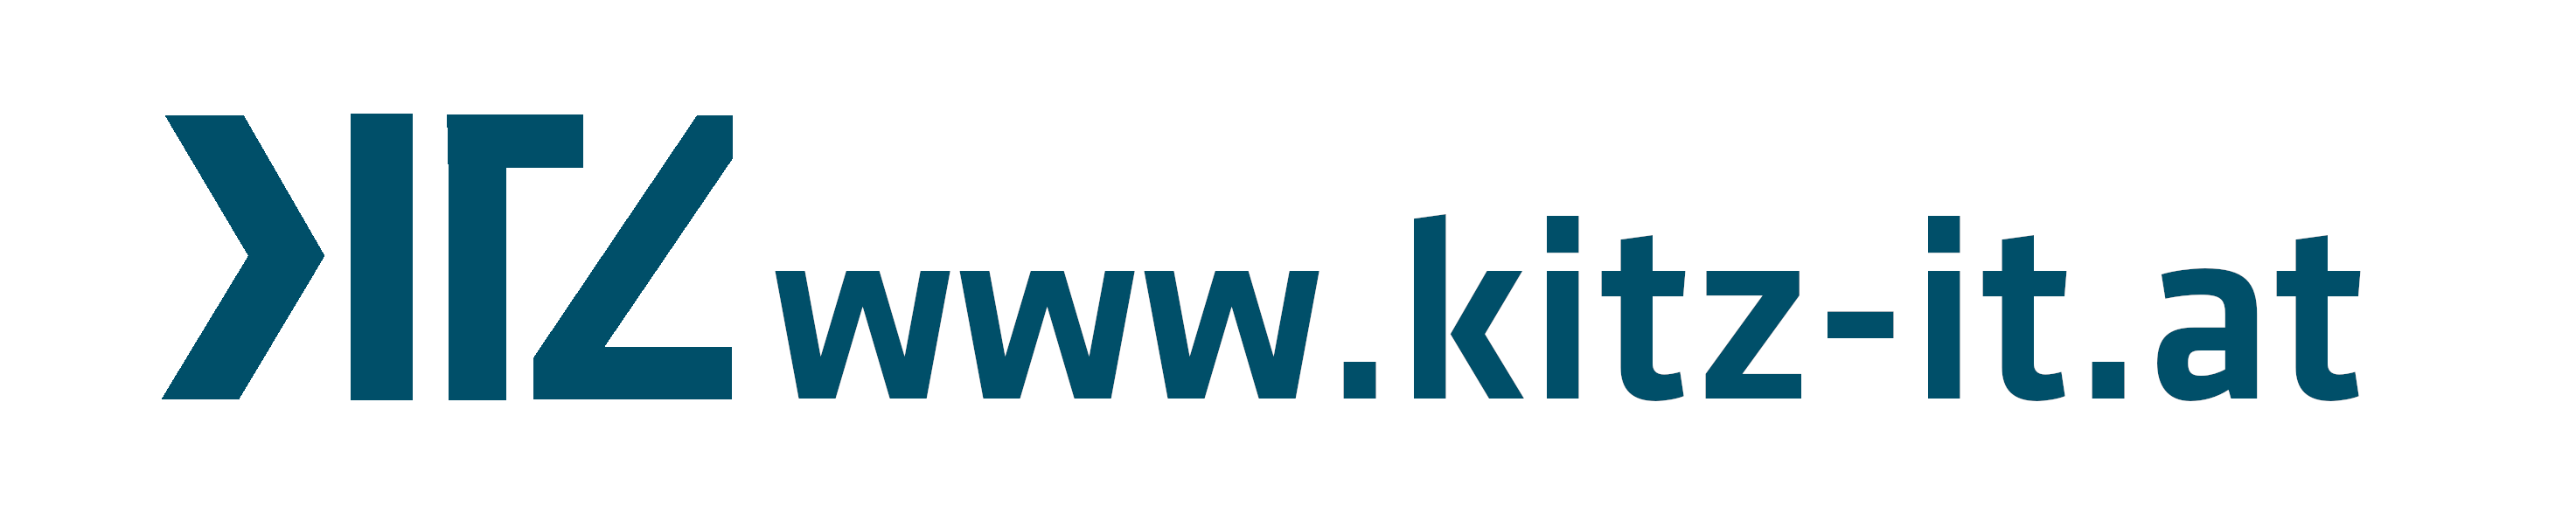 KITZ IT-SOLUTIONS GMBH